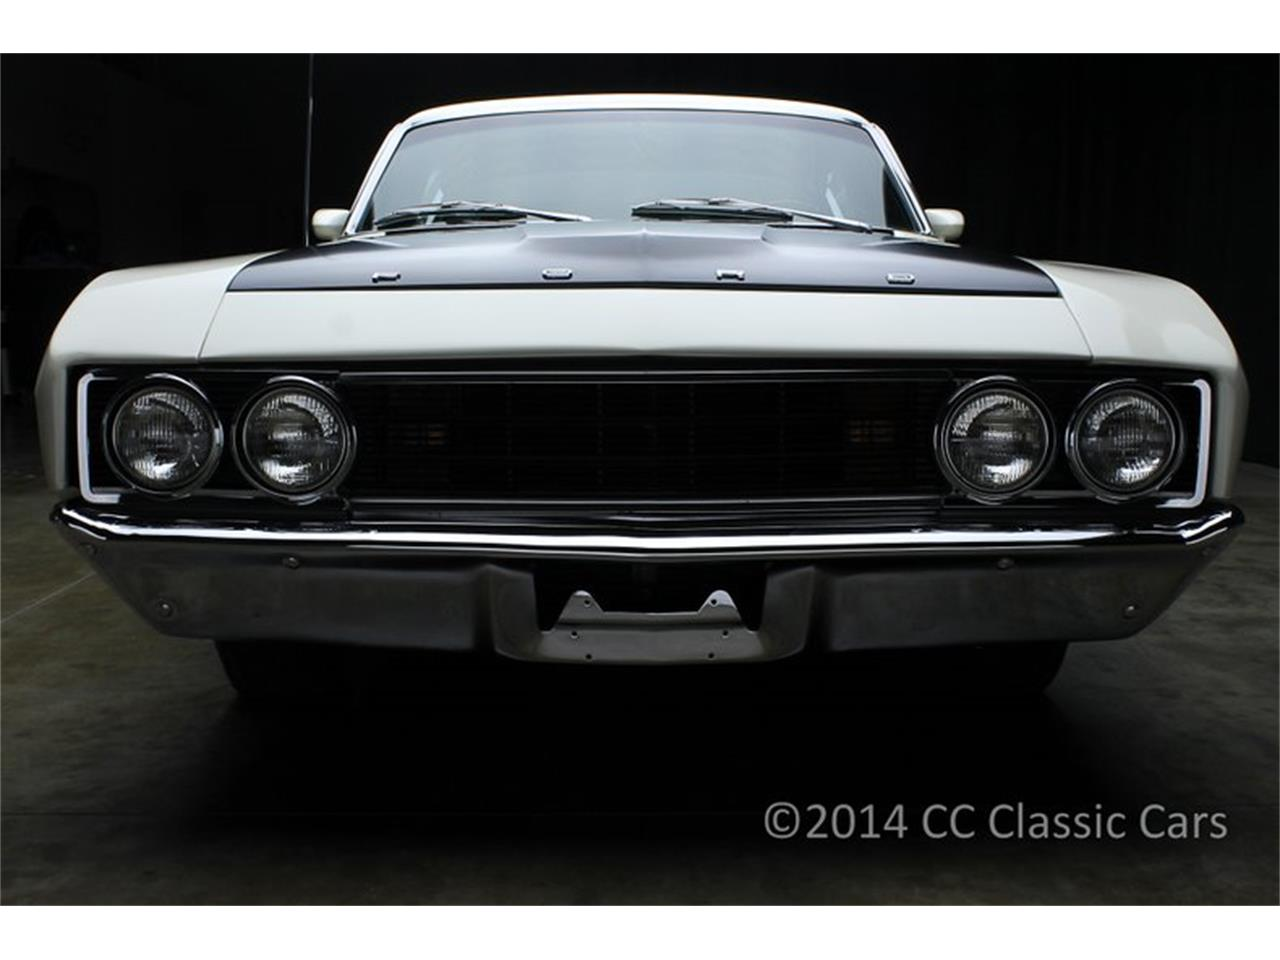 Large Picture of '69 Torino located in West Chester Pennsylvania - $69,900.00 Offered by CC Classic Cars - HZ0H